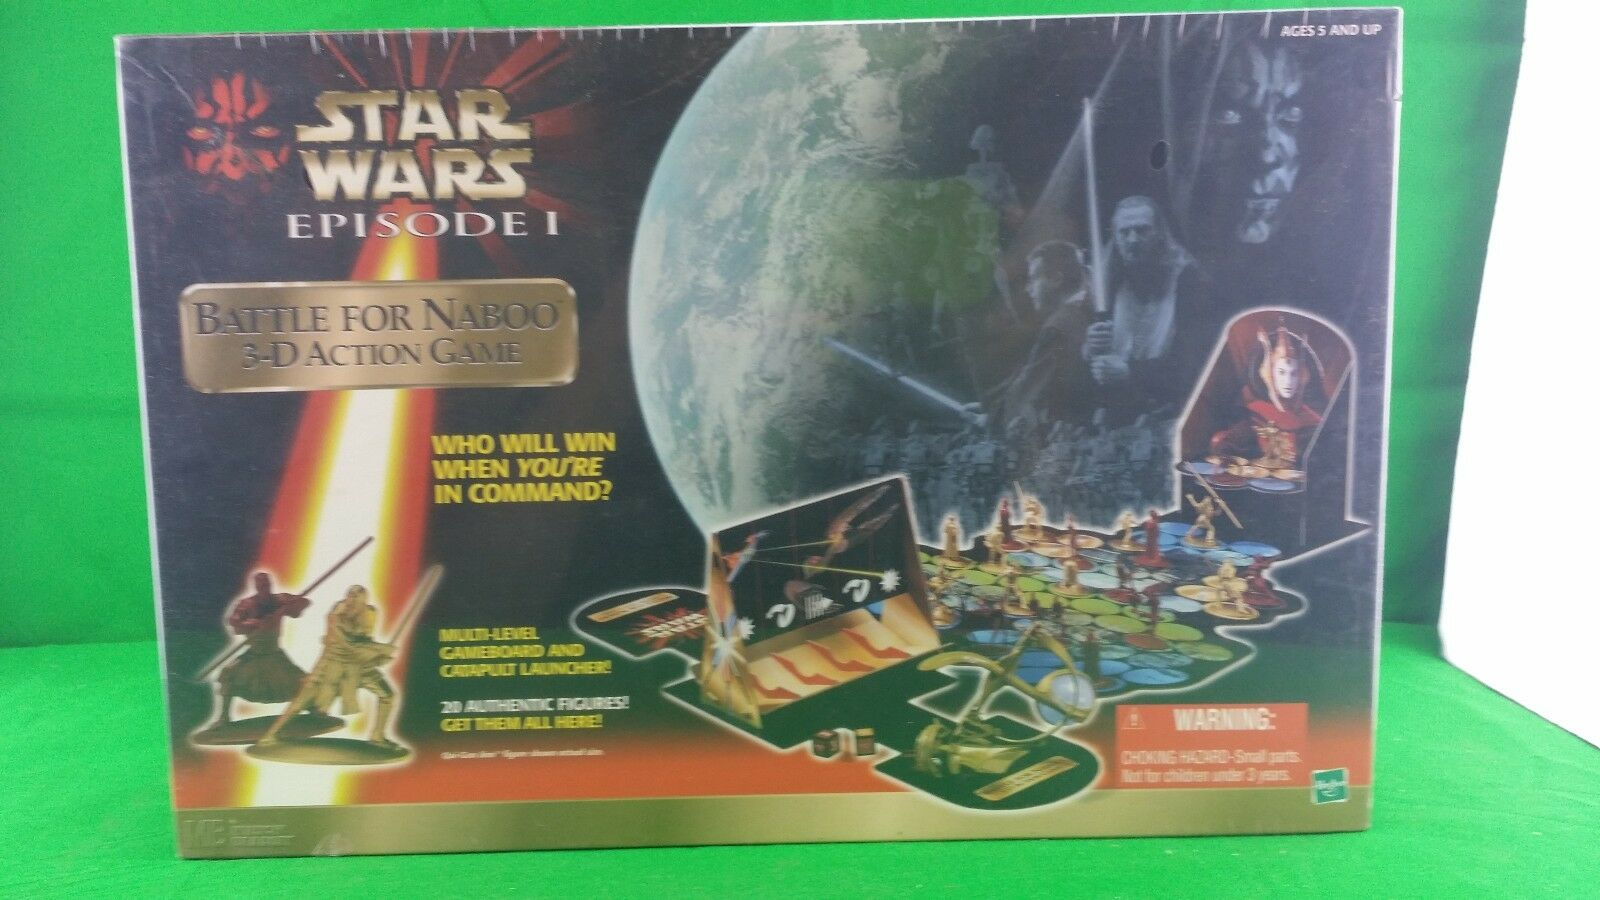 Star Wars Episode 1 Battle for Naboo 3d game NIB (Sealed)